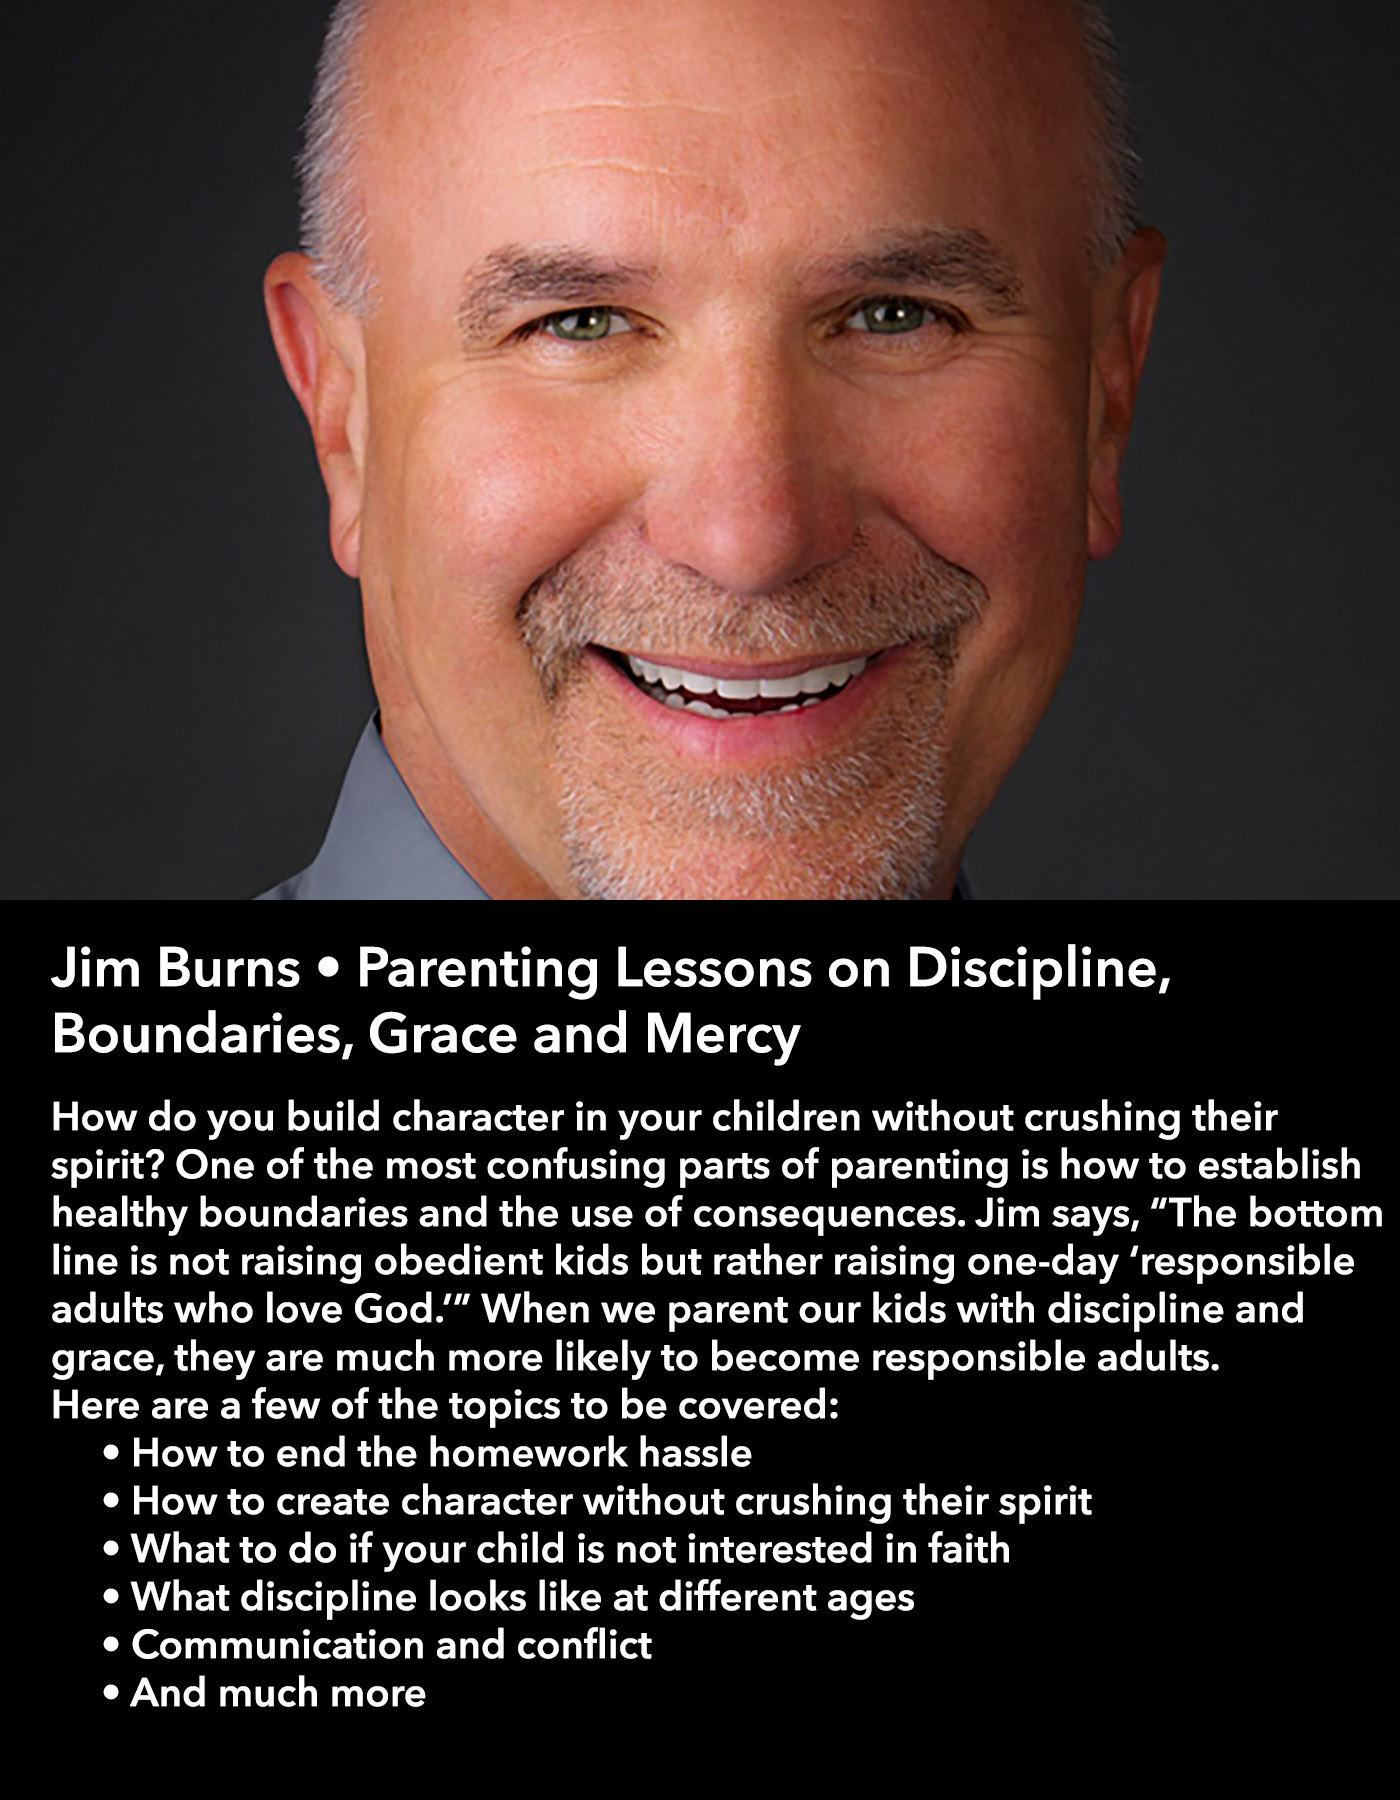 Jim Burns • Parenting Lessons on Discipline, Boundaries, Grace and Mercy • Saturday Morning, March 18 • 10:30 – 11:45 am